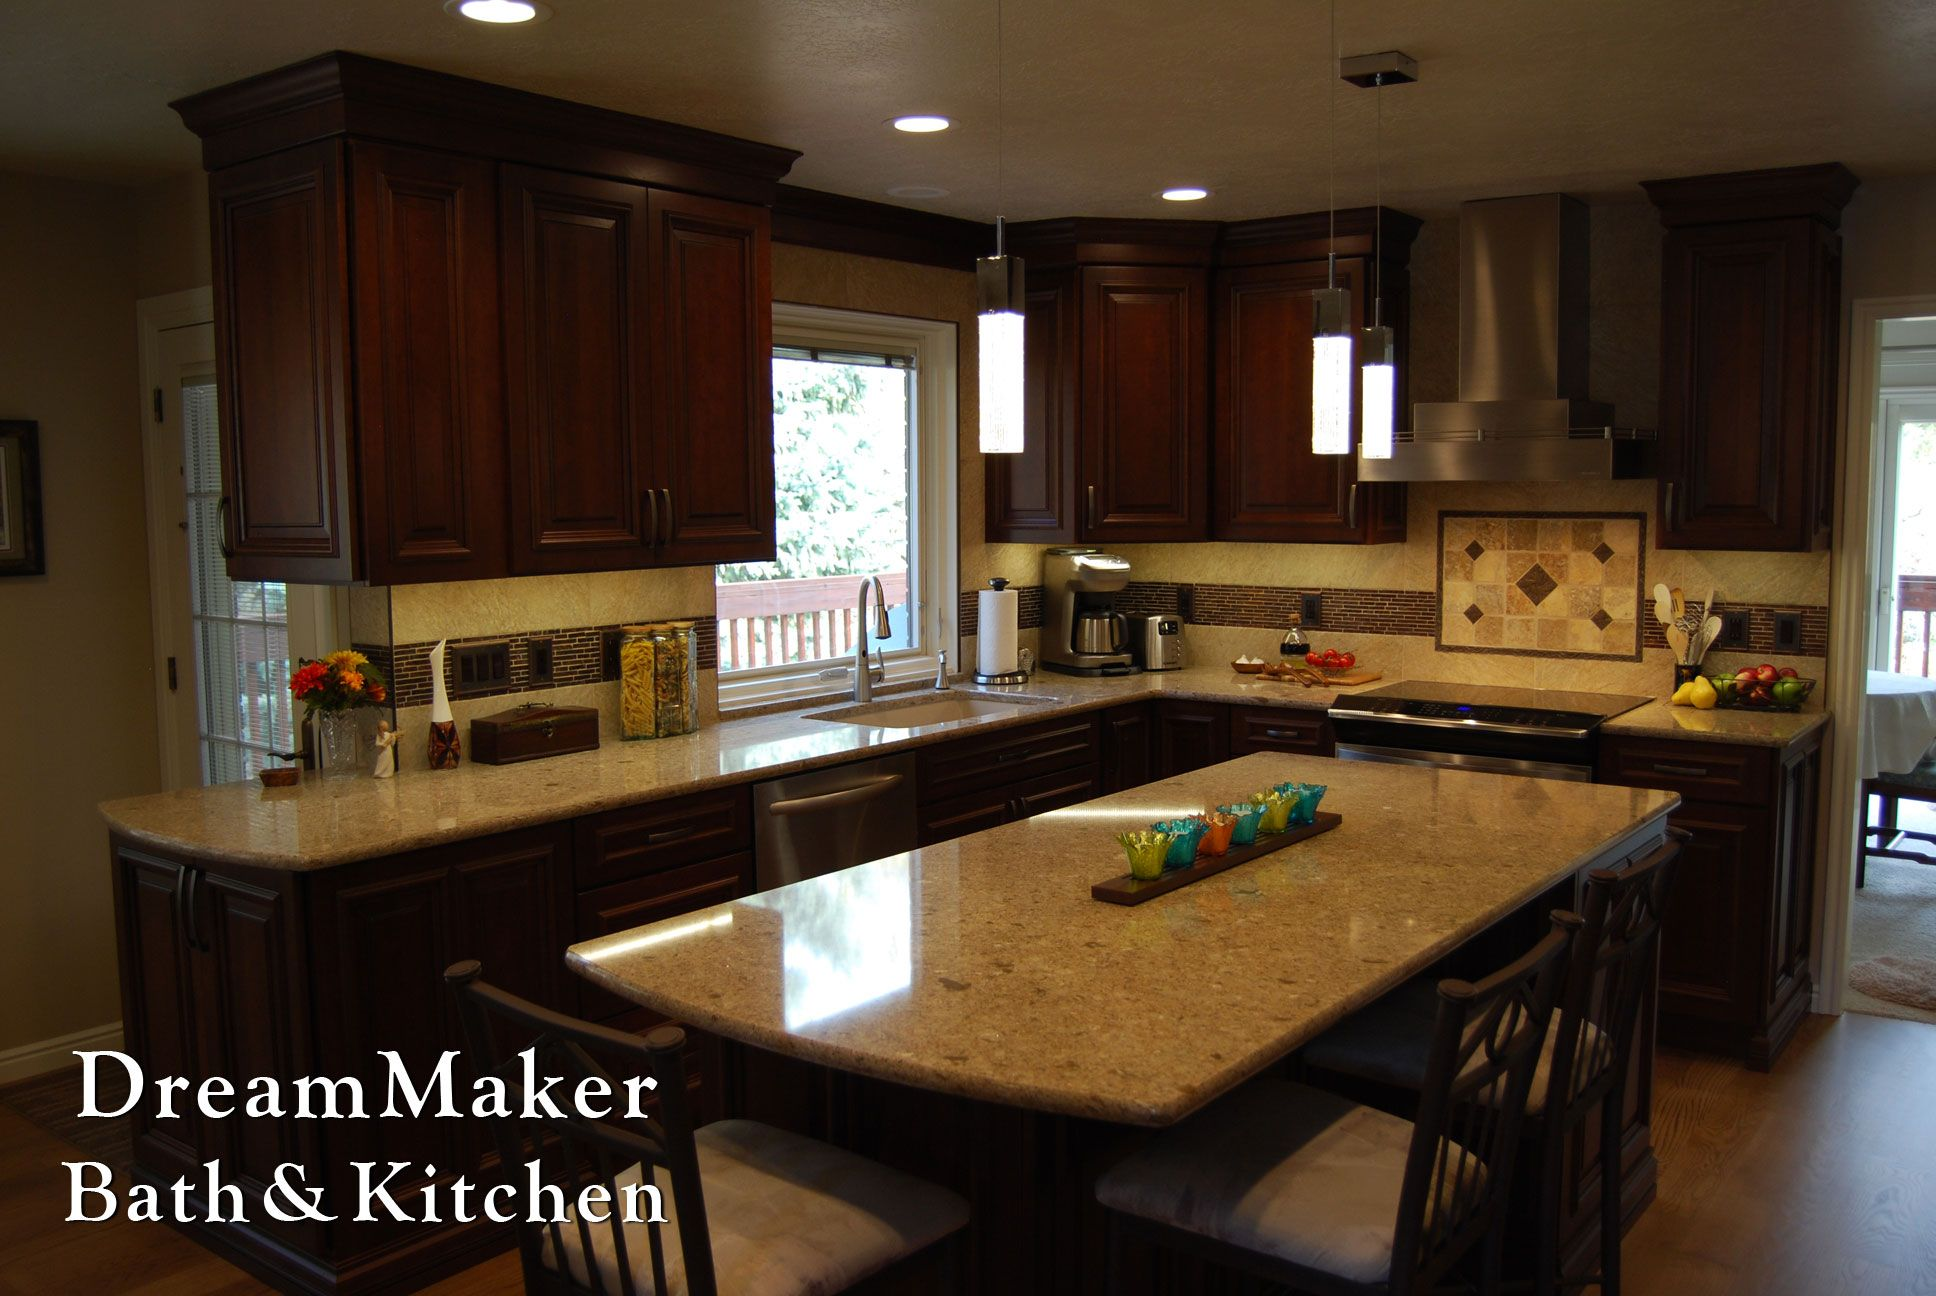 This kitchen remodel included some darker colors